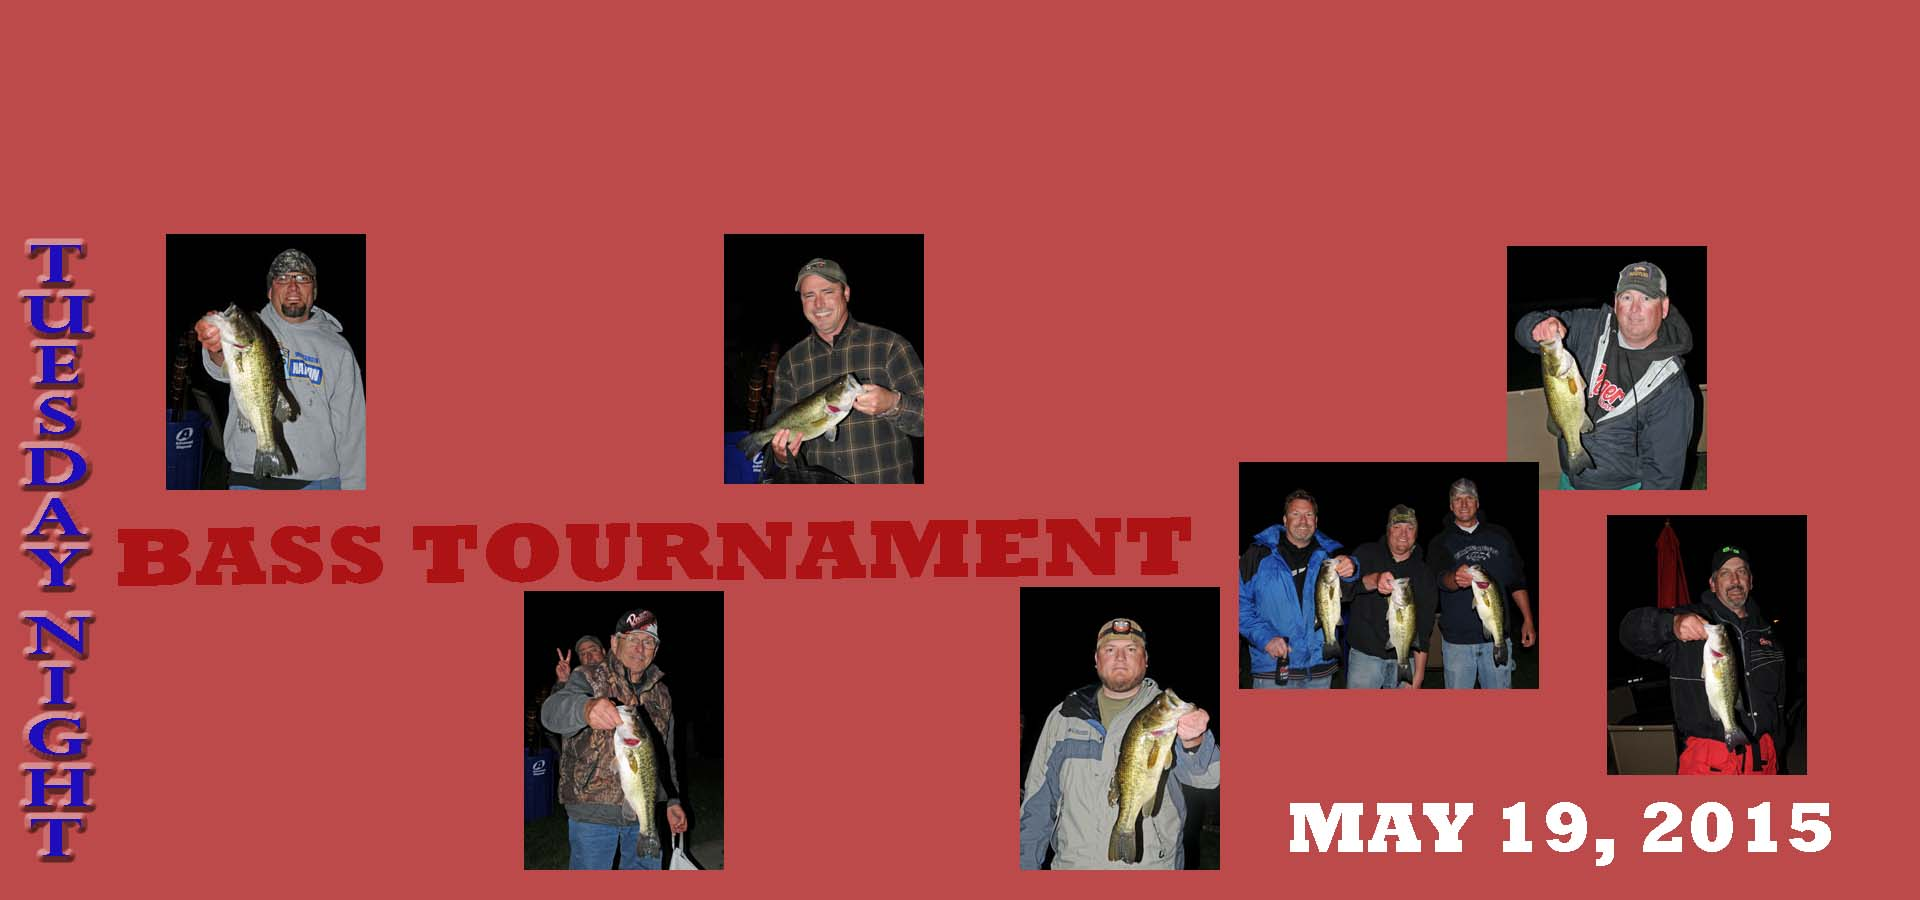 BASS TOURNAMENT may 19